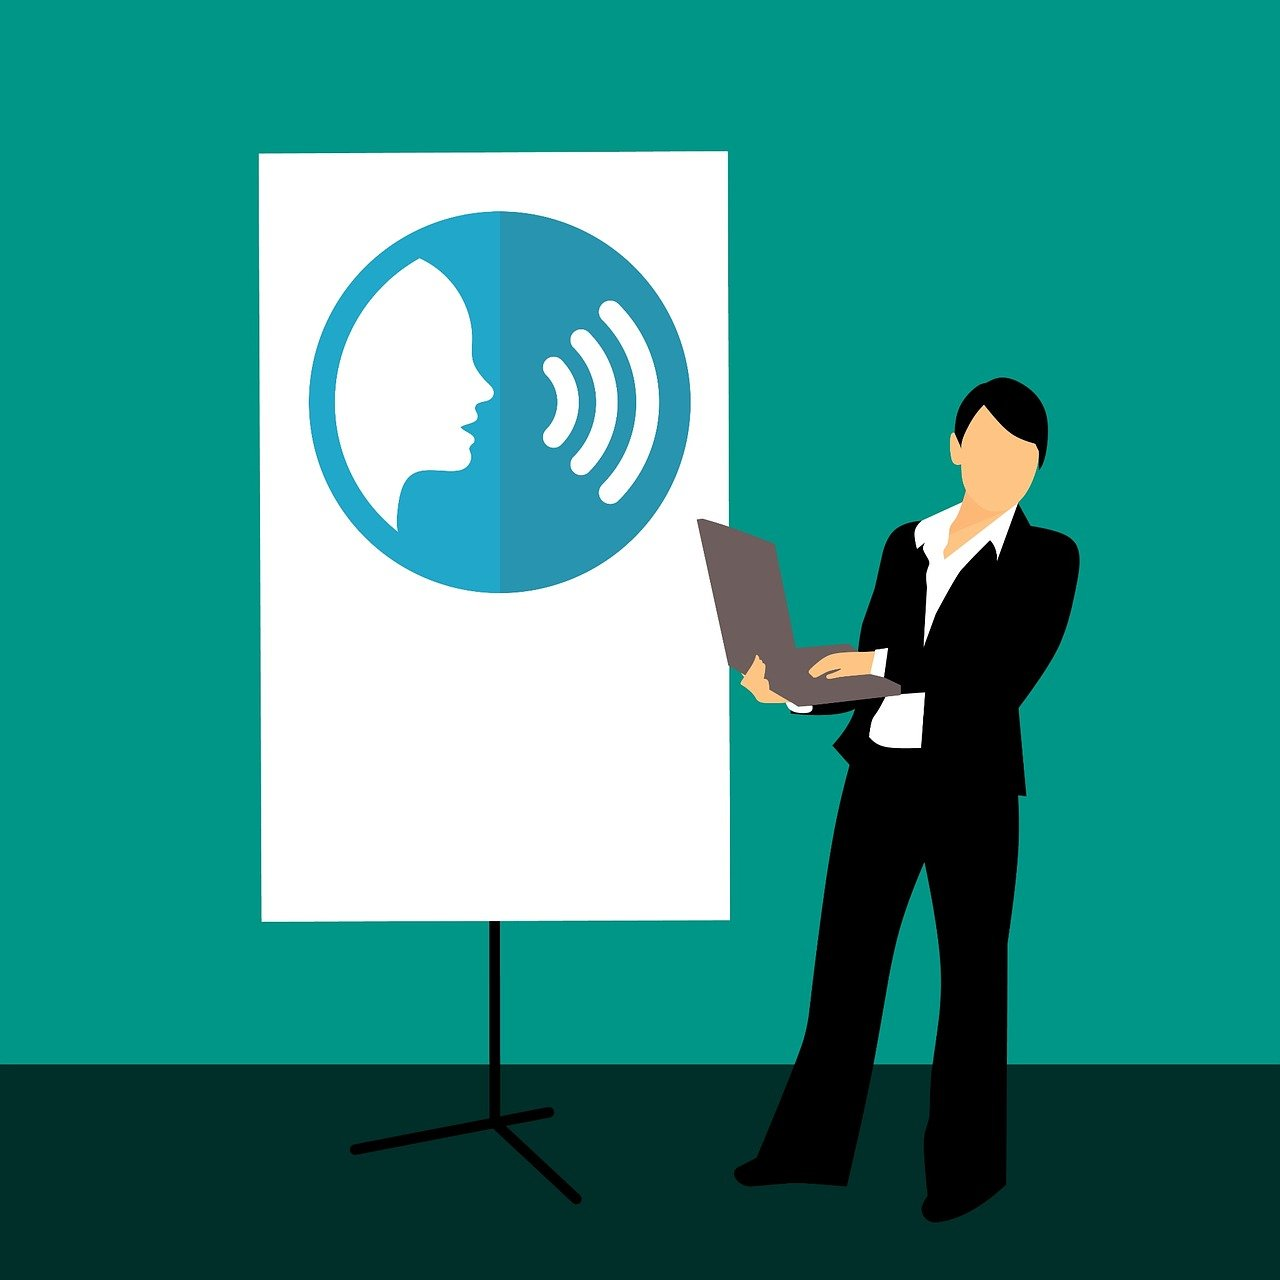 communication skills, media training, public speaking